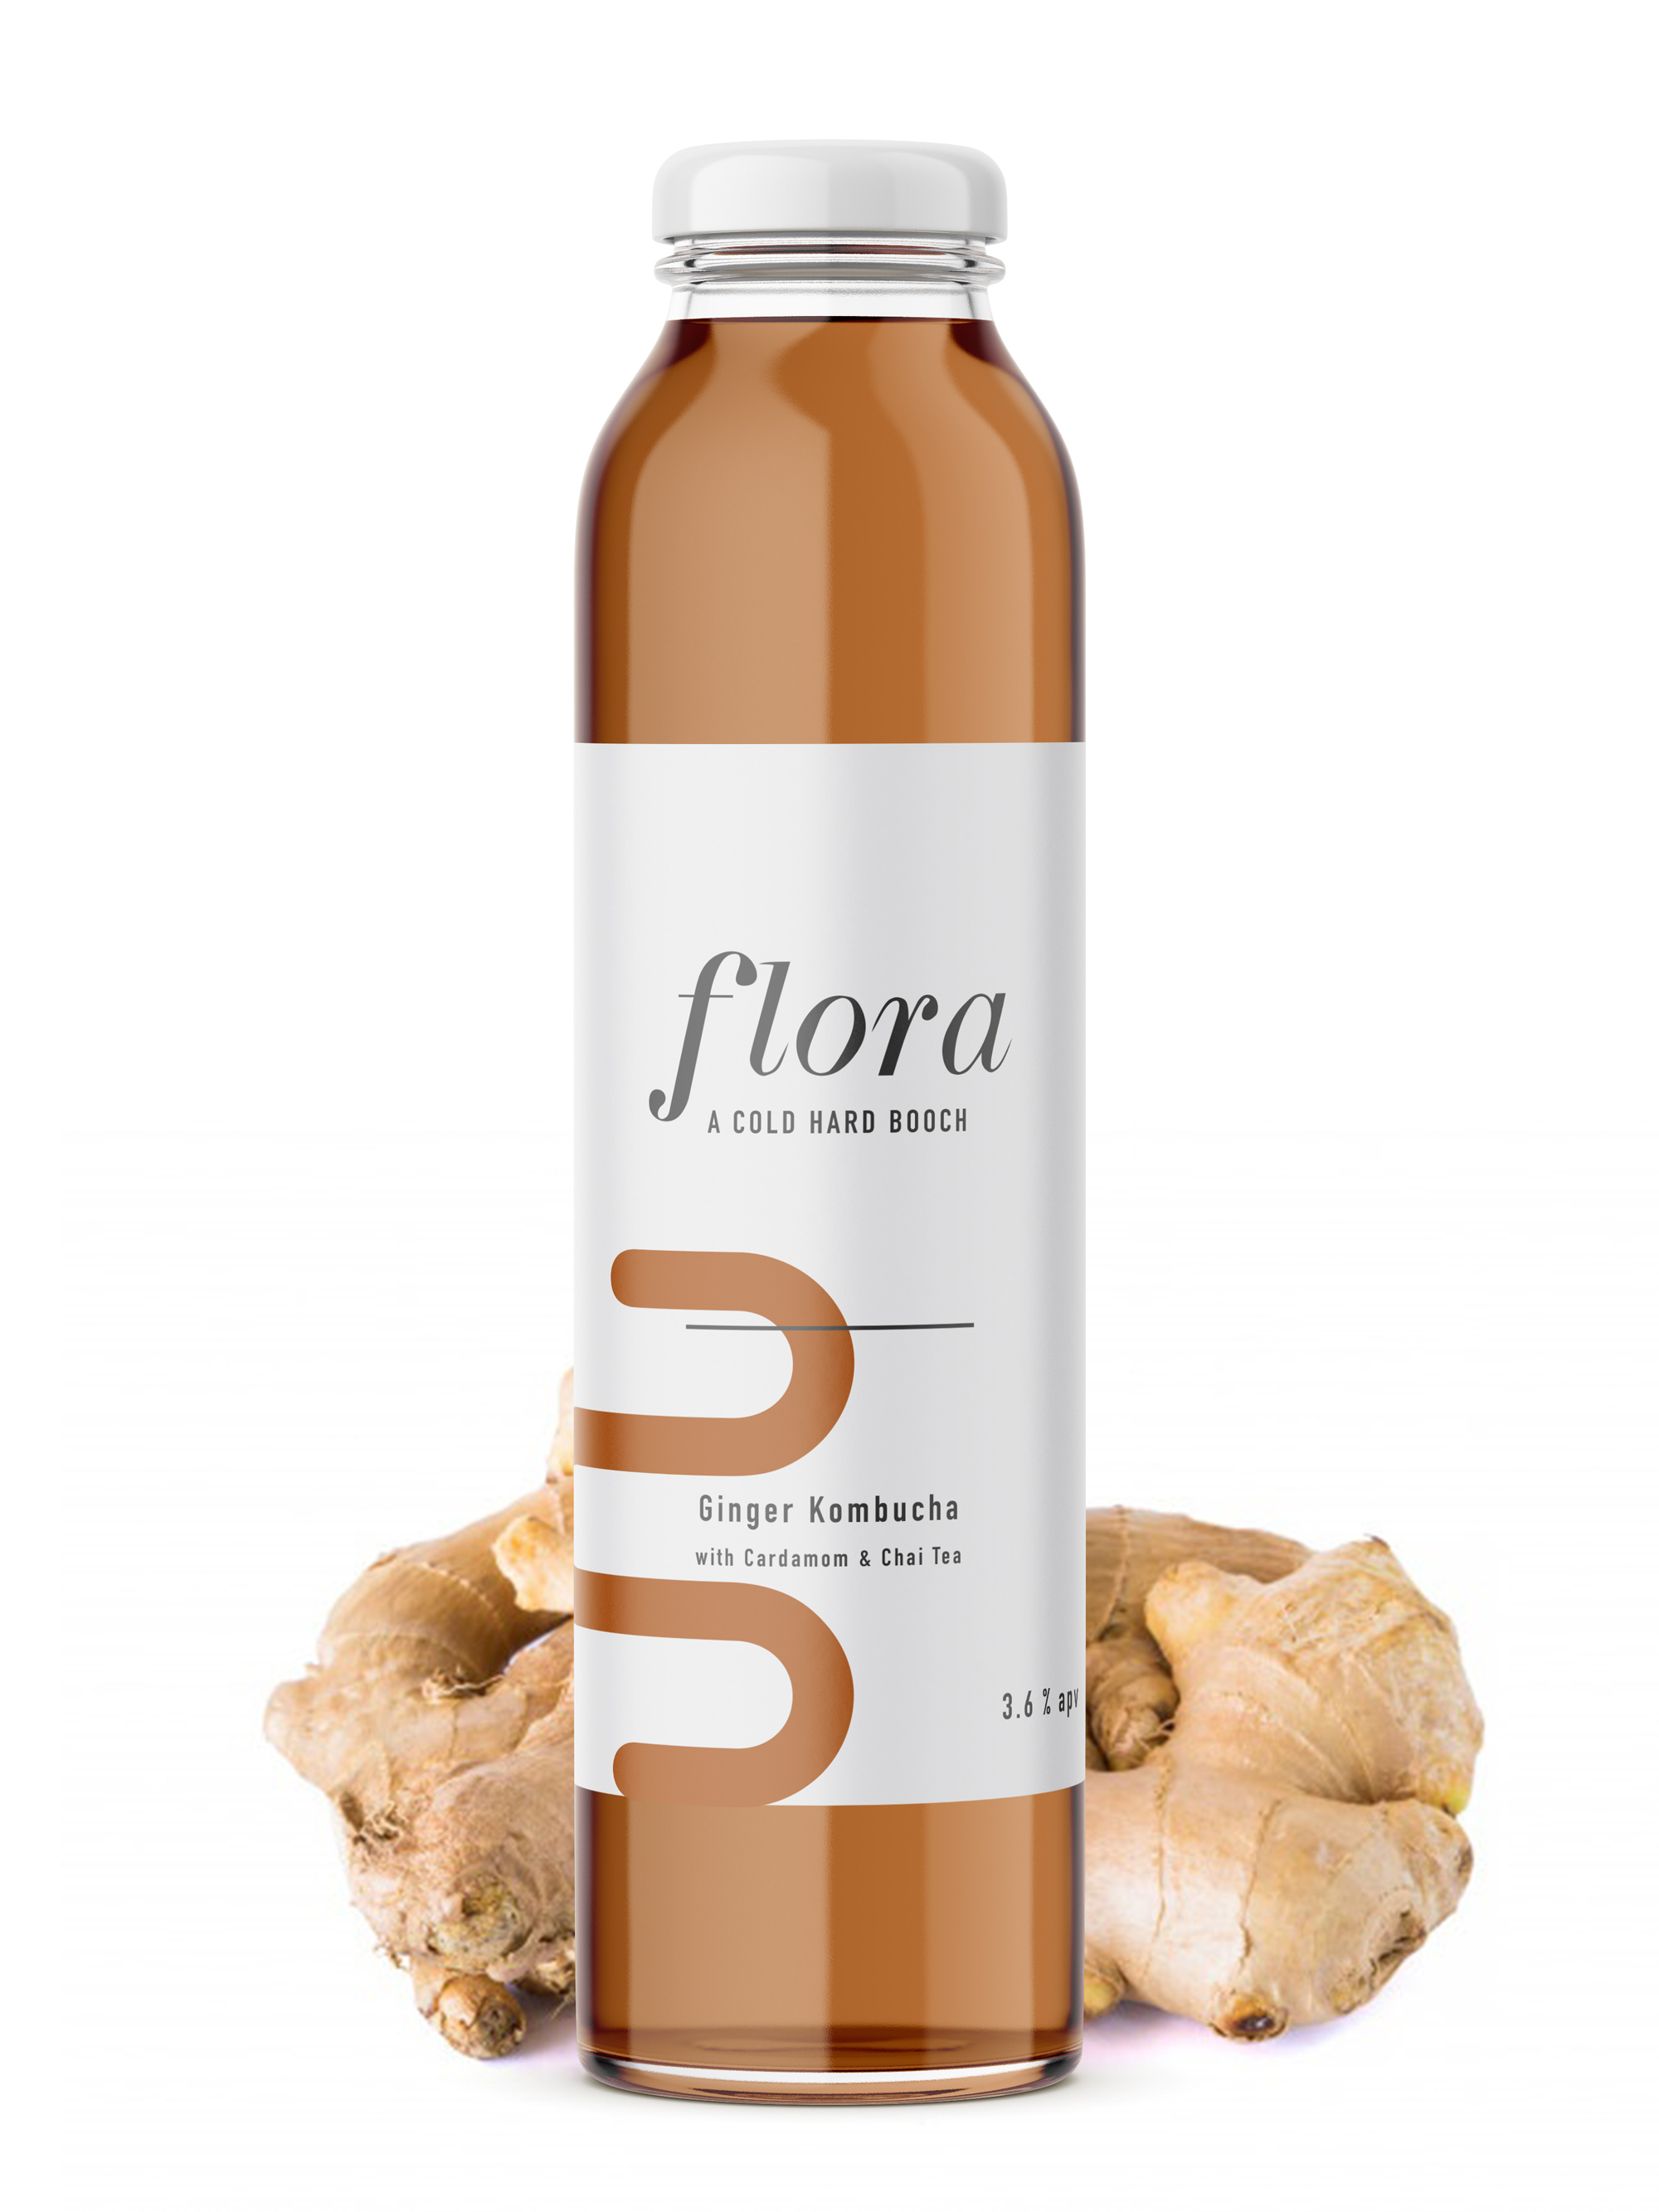 Flora-Kombuchs-Ginger-and-ginger-Mock-up.jpg